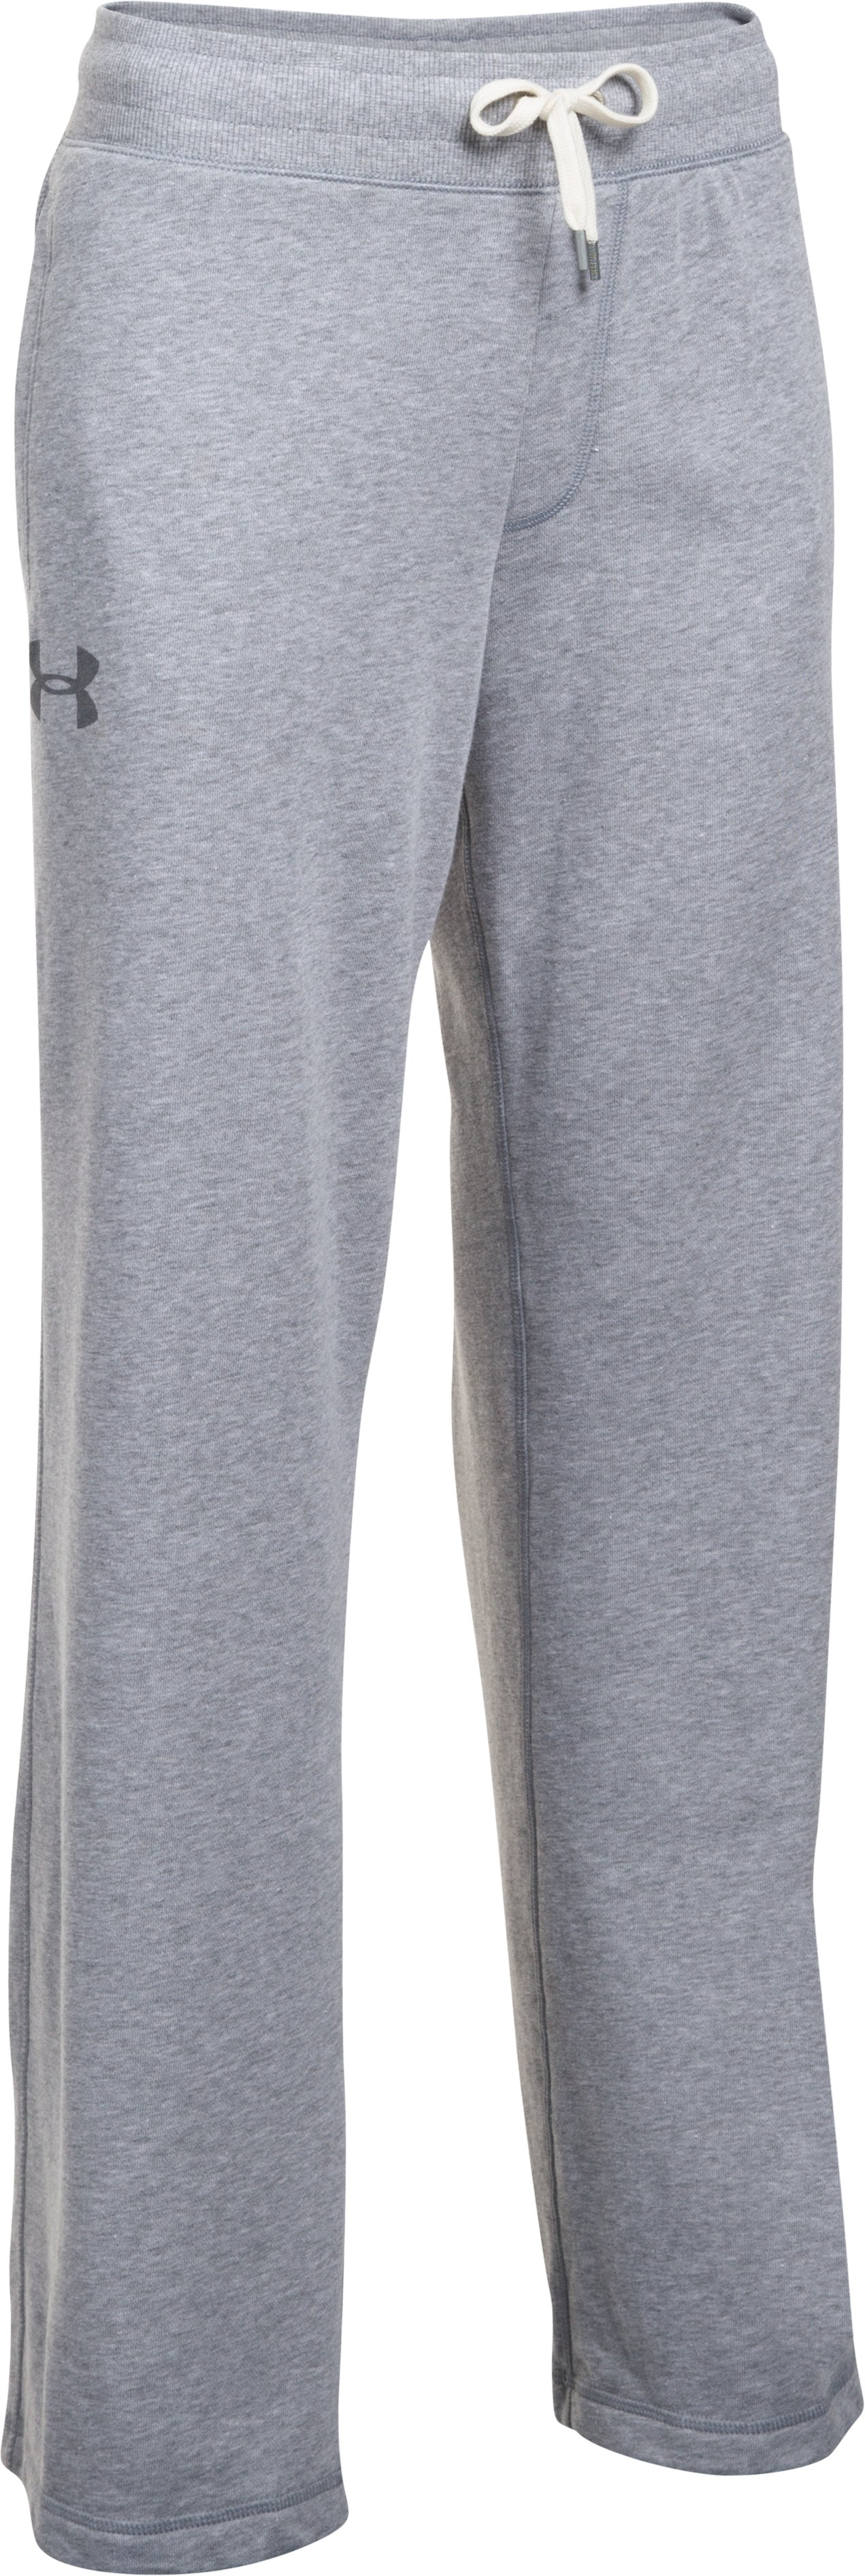 Women's UA Favorite French Terry Slouchy Pant, True Gray Heather,